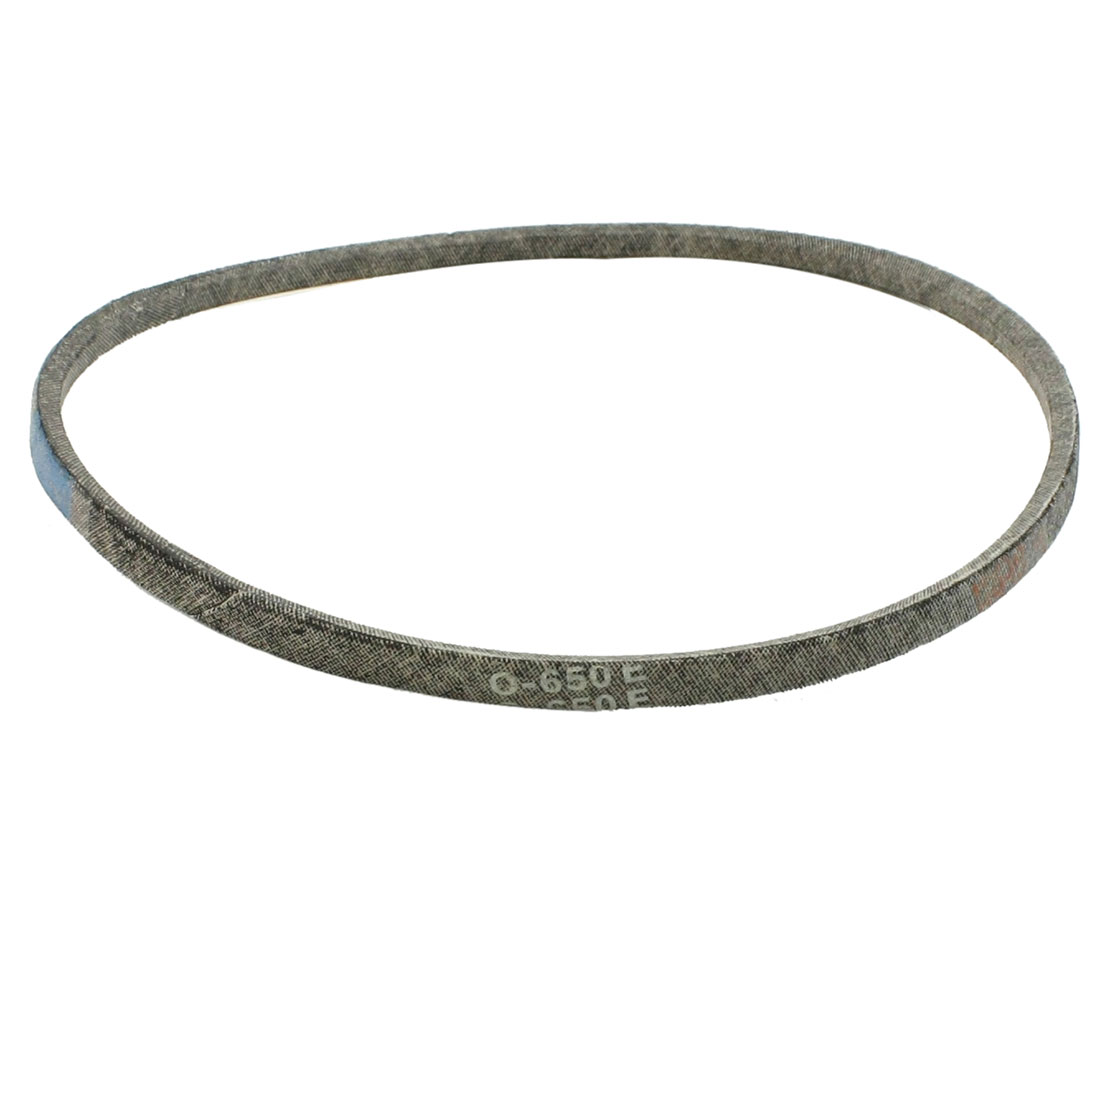 "Washing Machine Motor V Belt Replacement 10mm Outer Width 25 19/32"" Inner Girth"